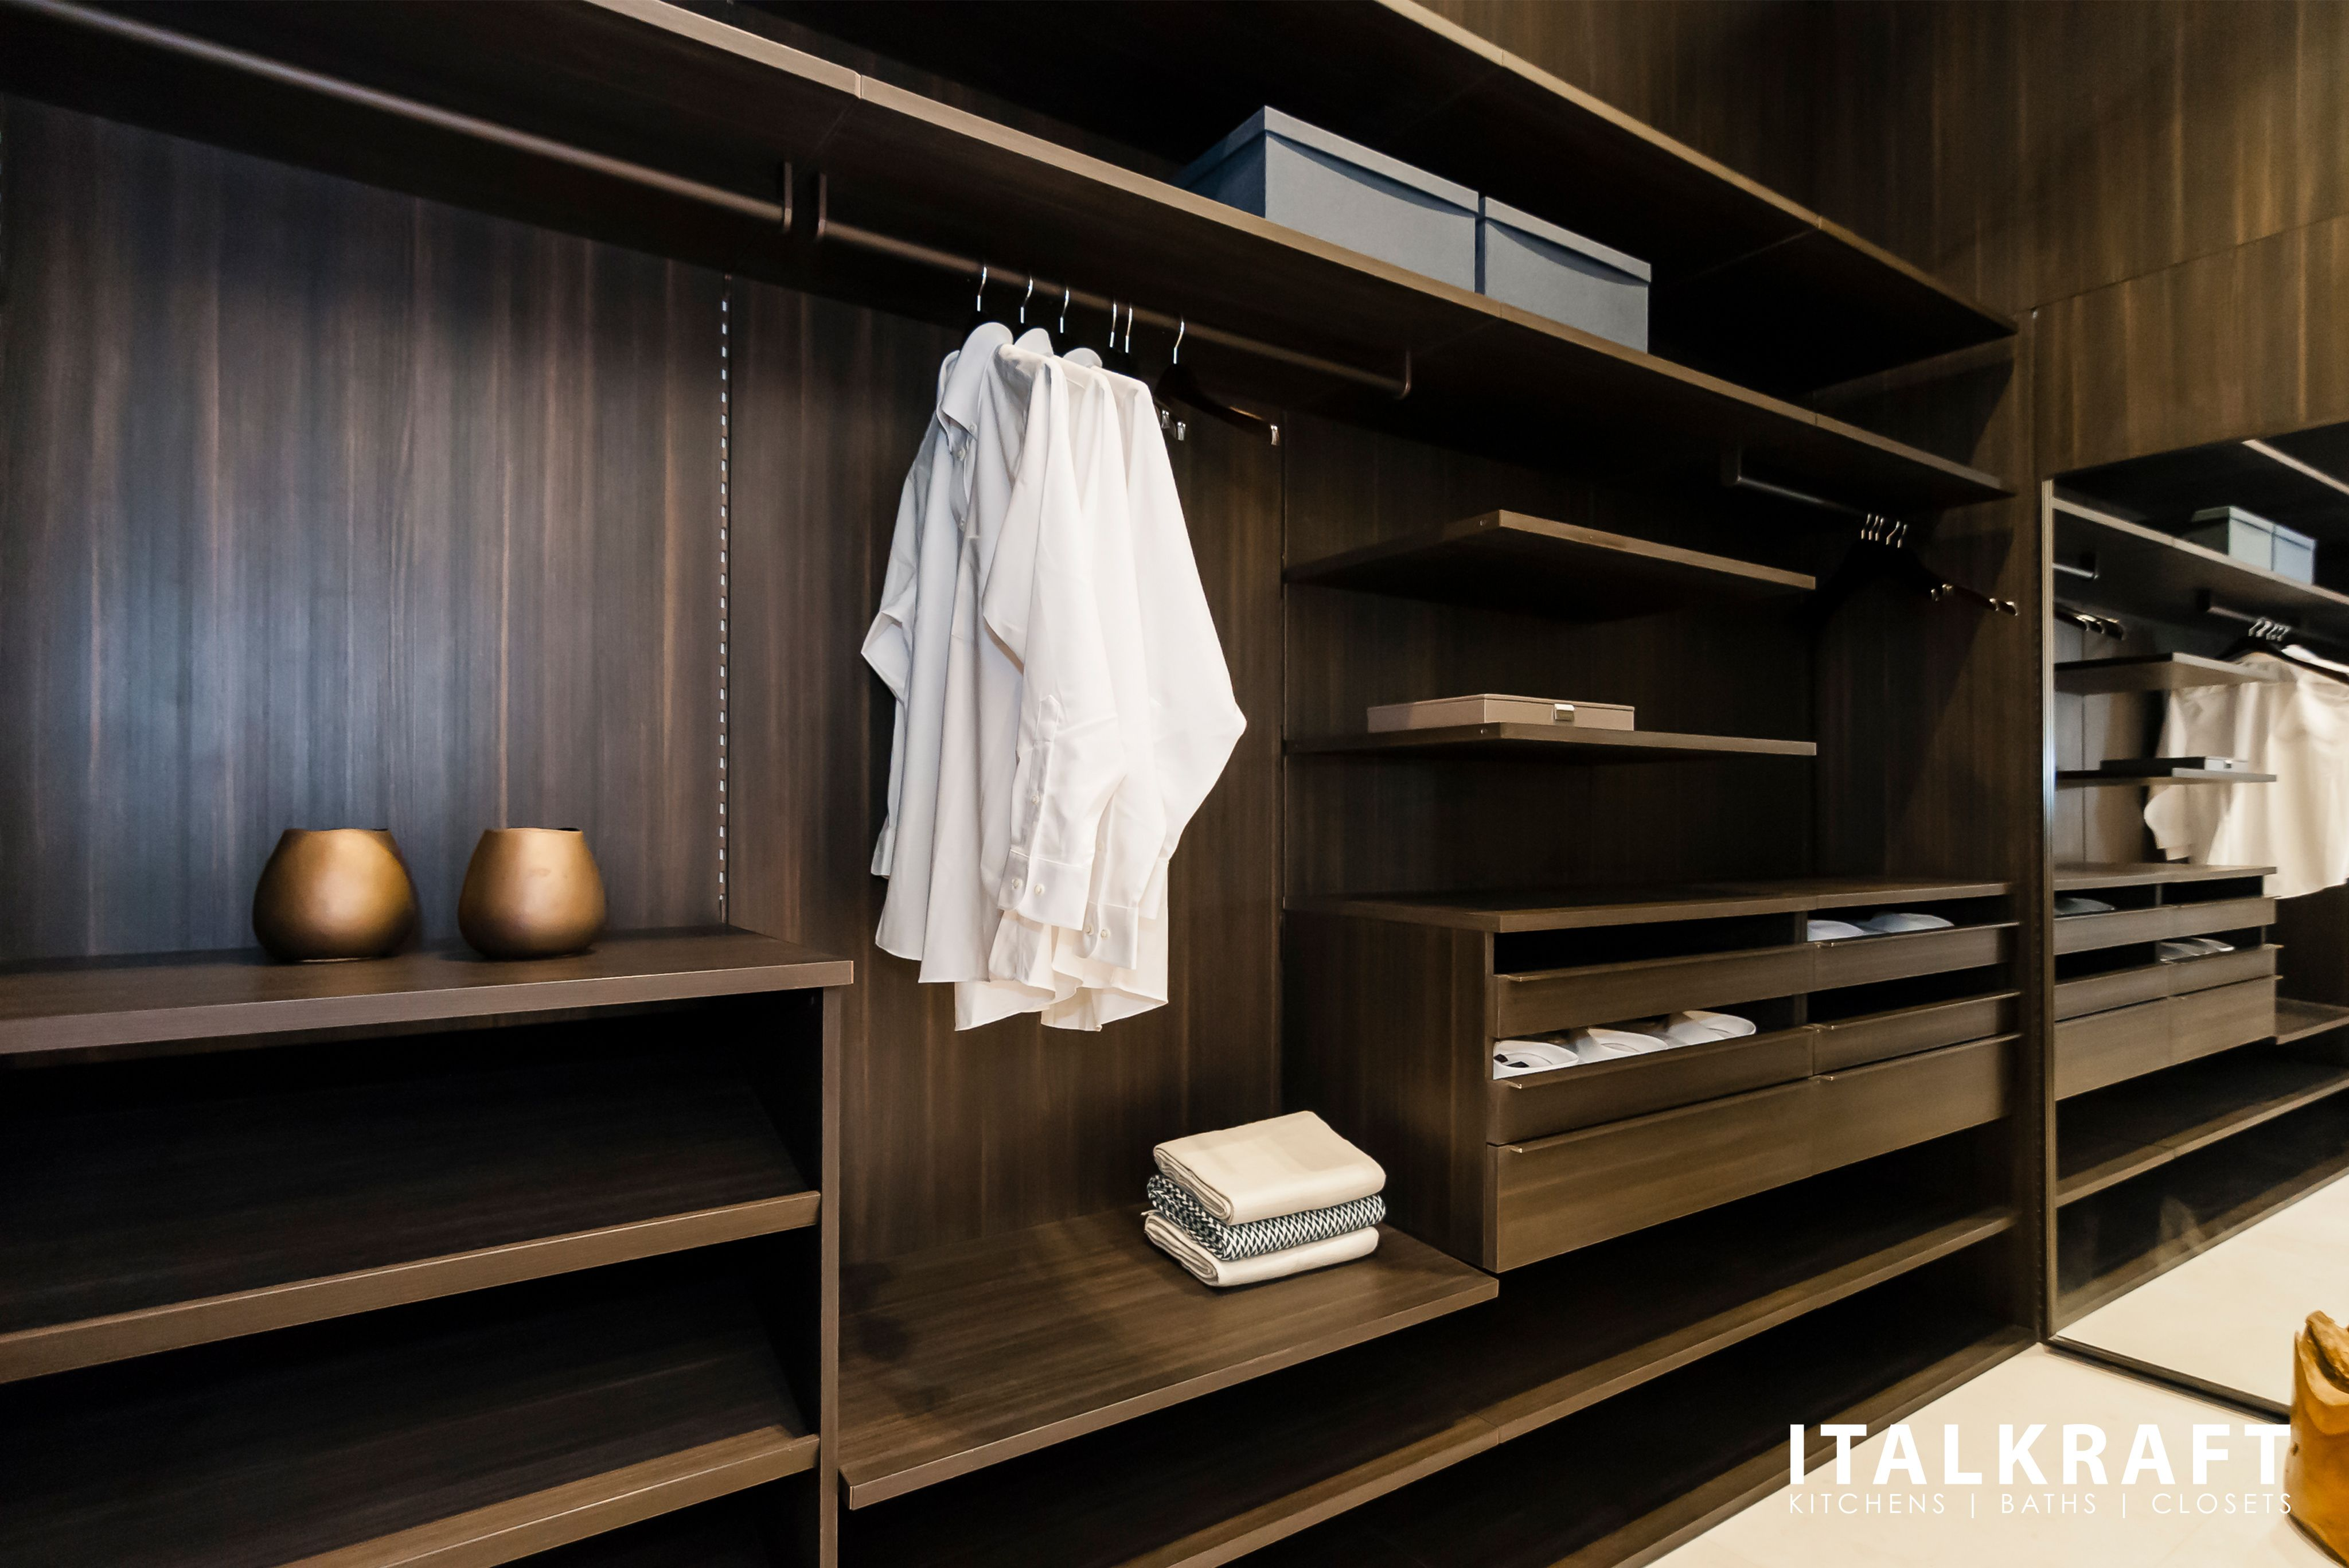 Pleasing Custom Luxury Closet Design By Italkraft Luxury Design Download Free Architecture Designs Sospemadebymaigaardcom